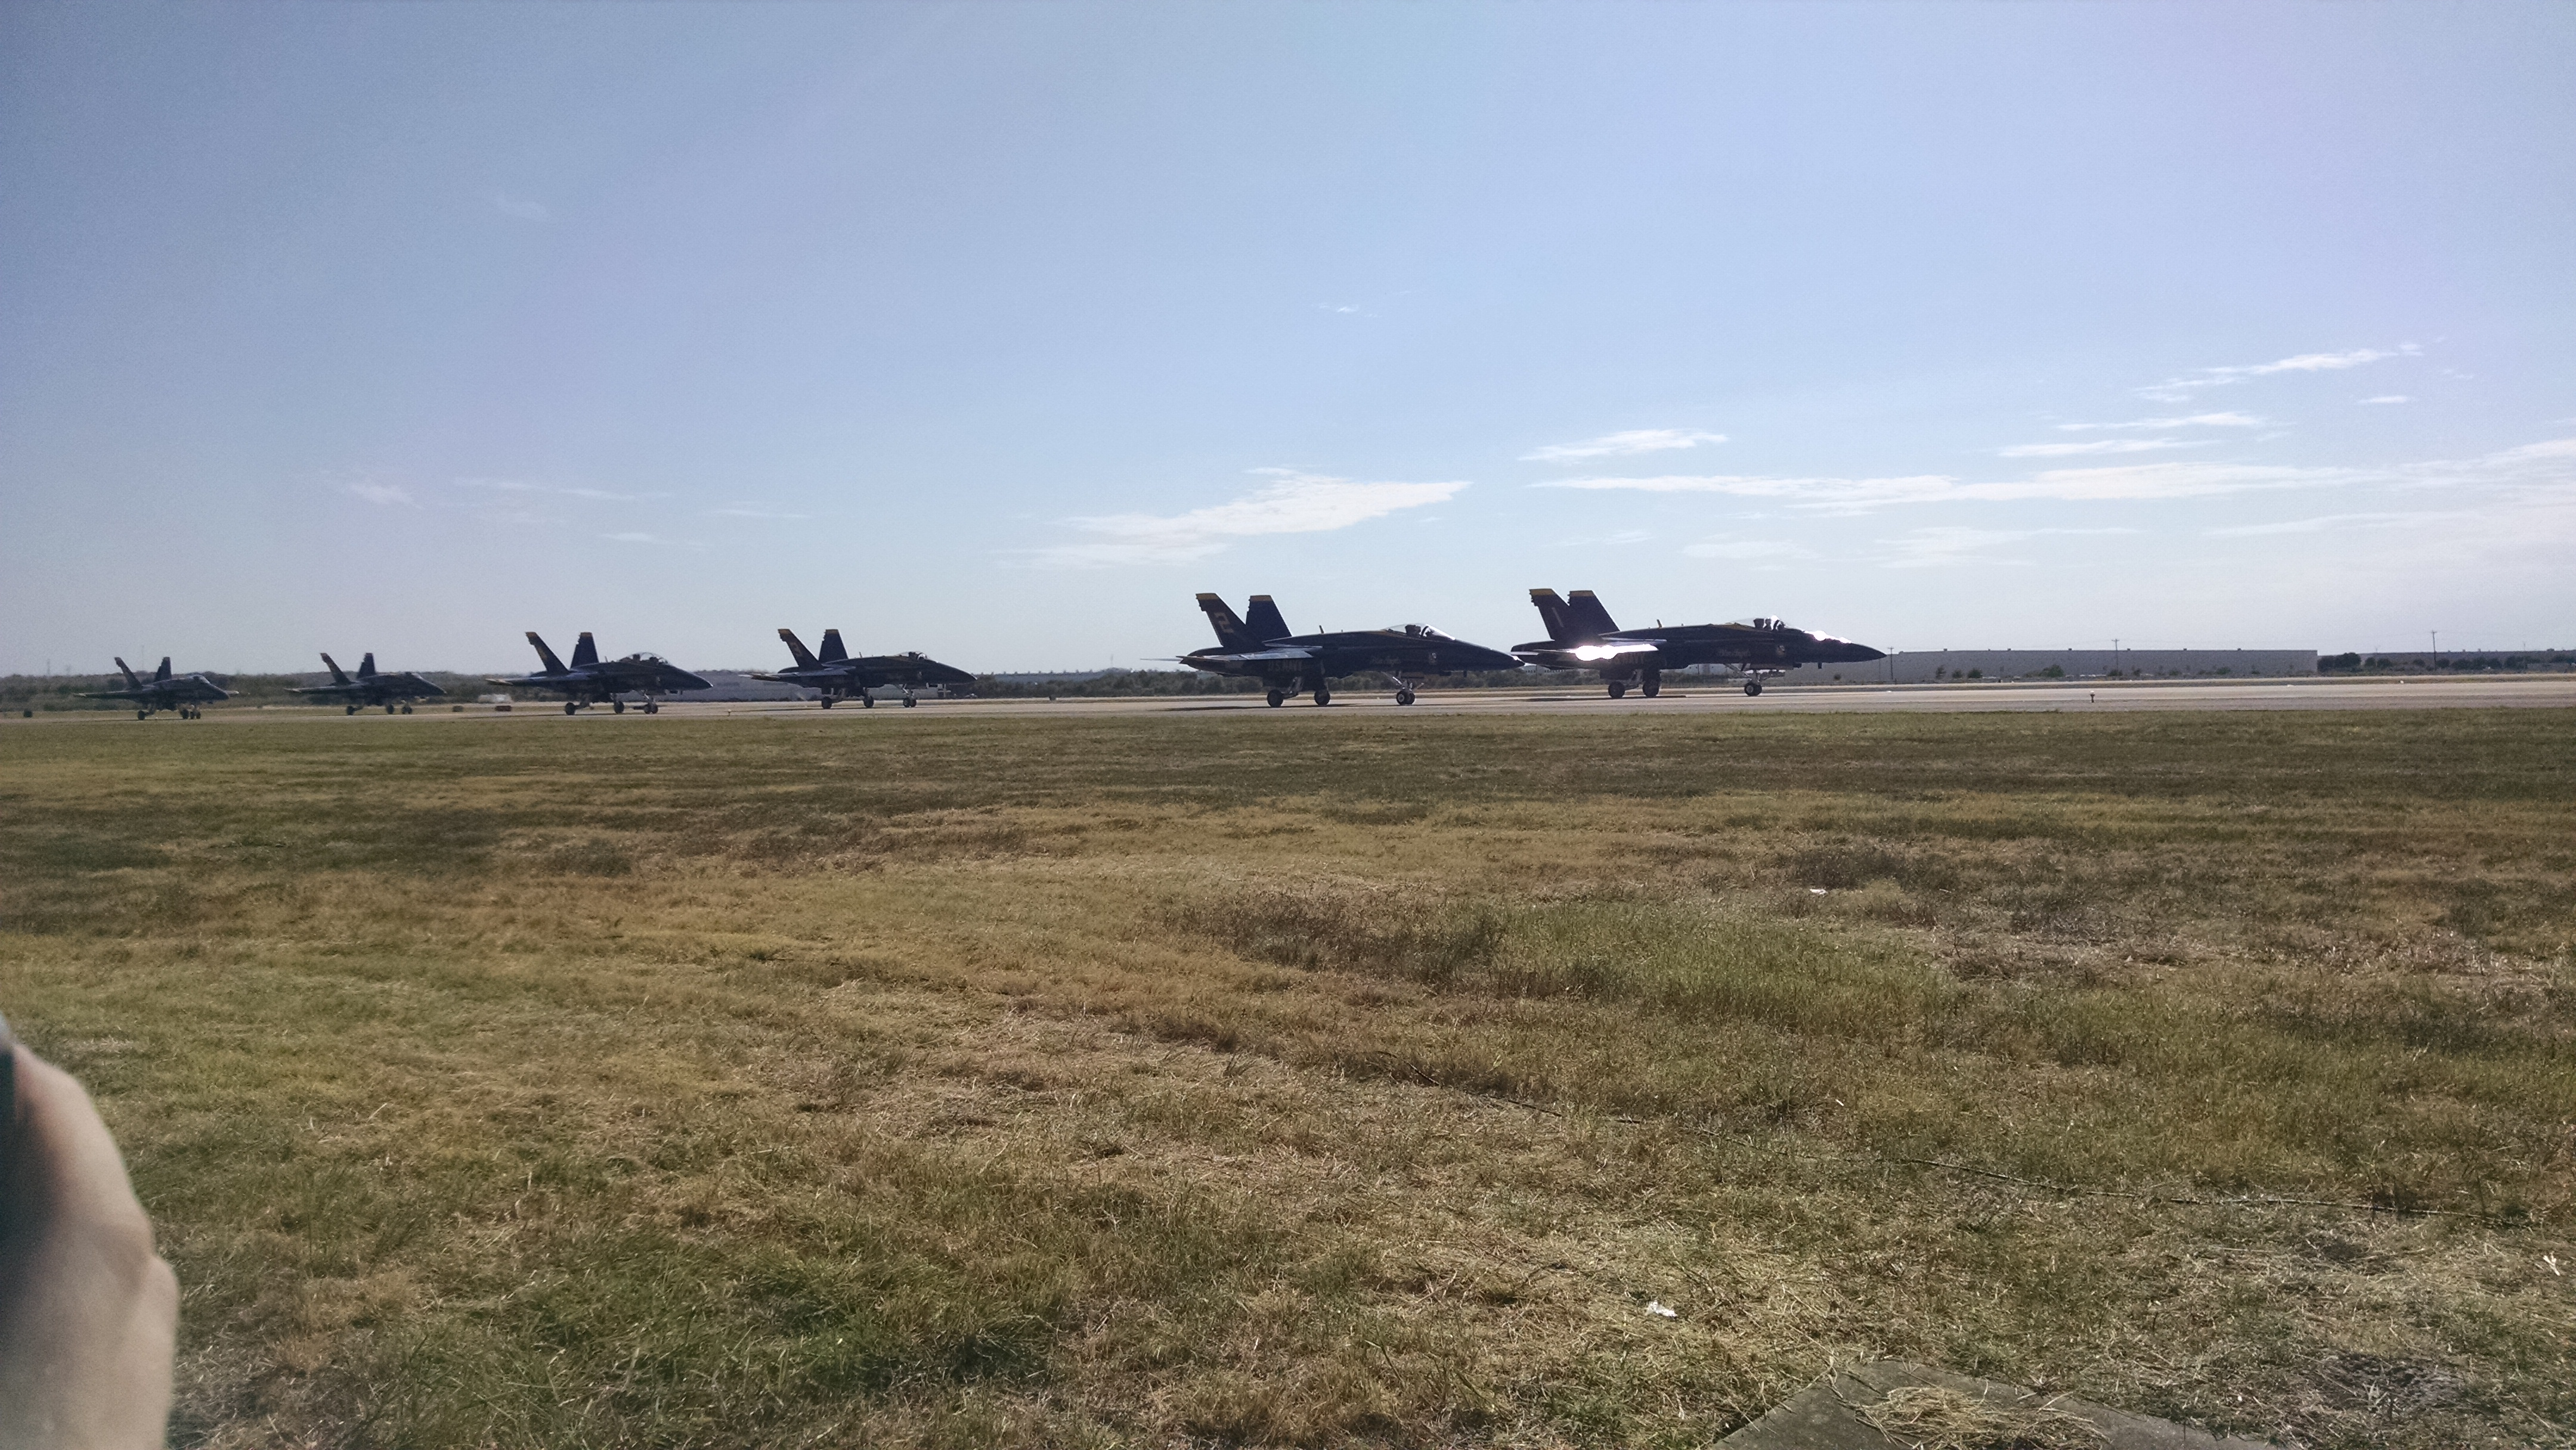 Blue Angles F-18s taxiing